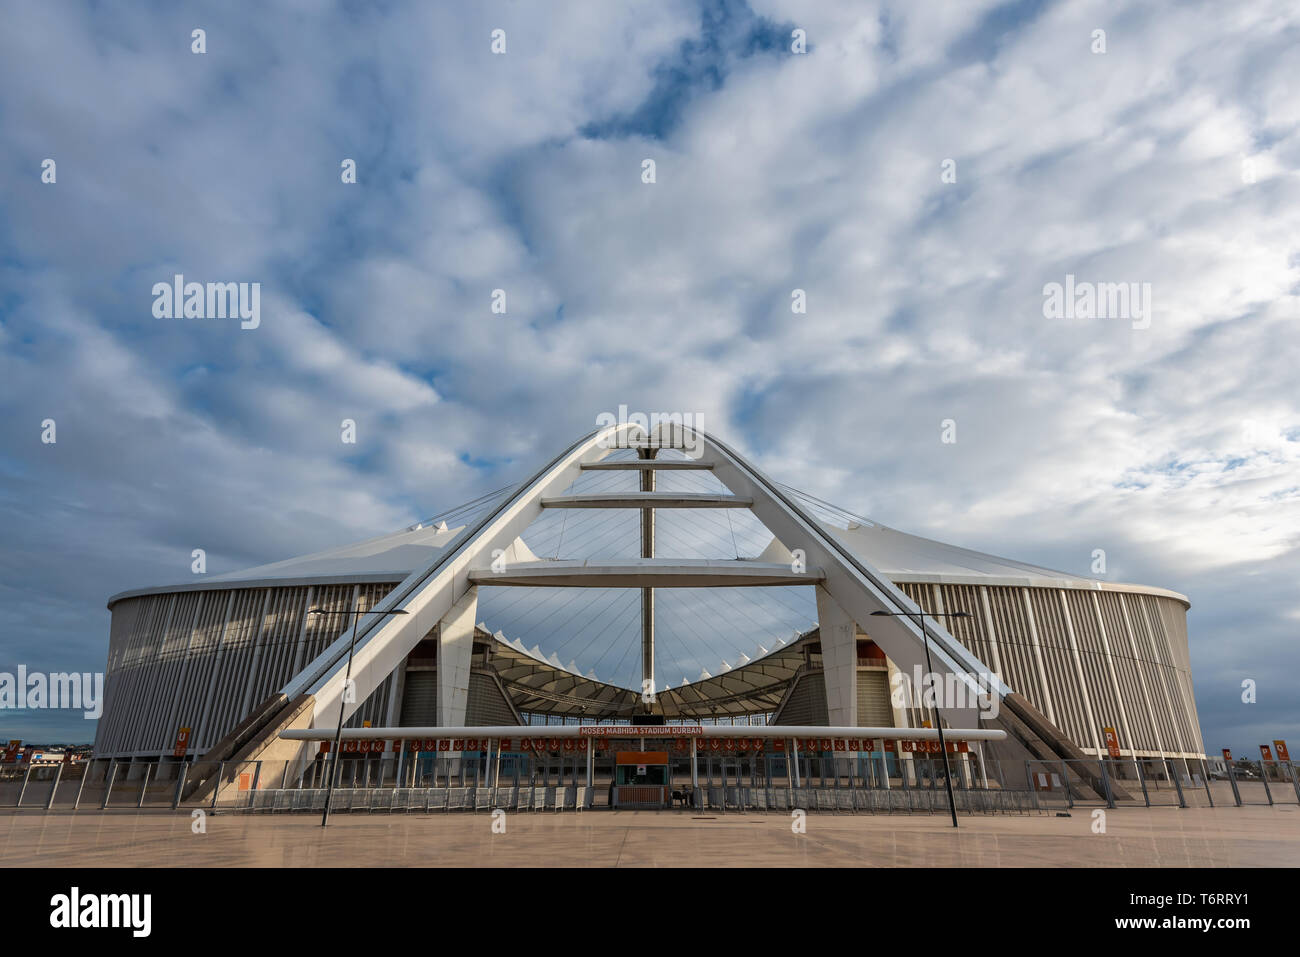 The elegant and inspiring Moses Mabhida Stadium in Durban, South Africa.  The stadium was designed by architect Gerhard le Roux. - Stock Image